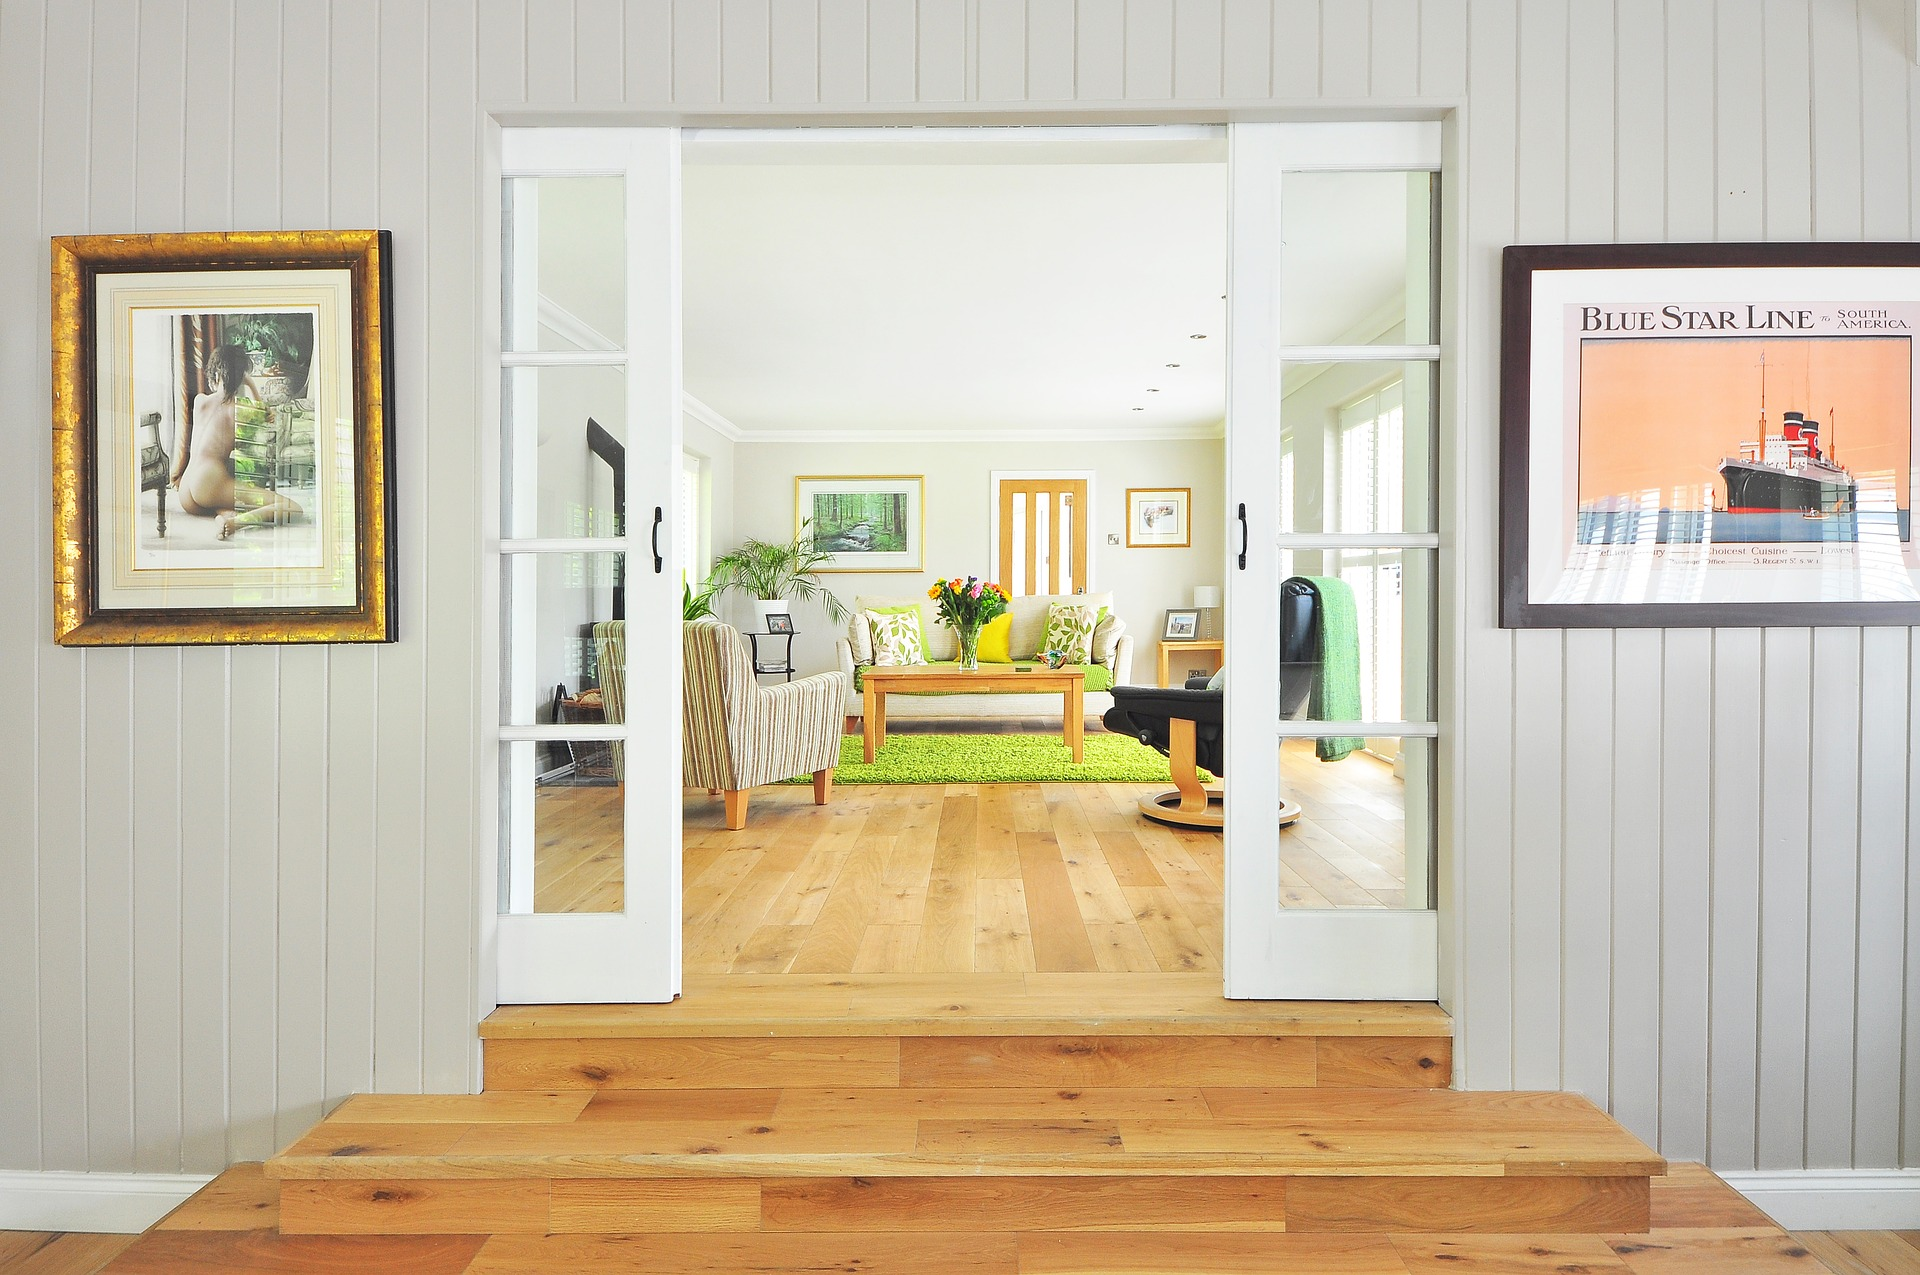 Top Home Remodeling Projects for 2019